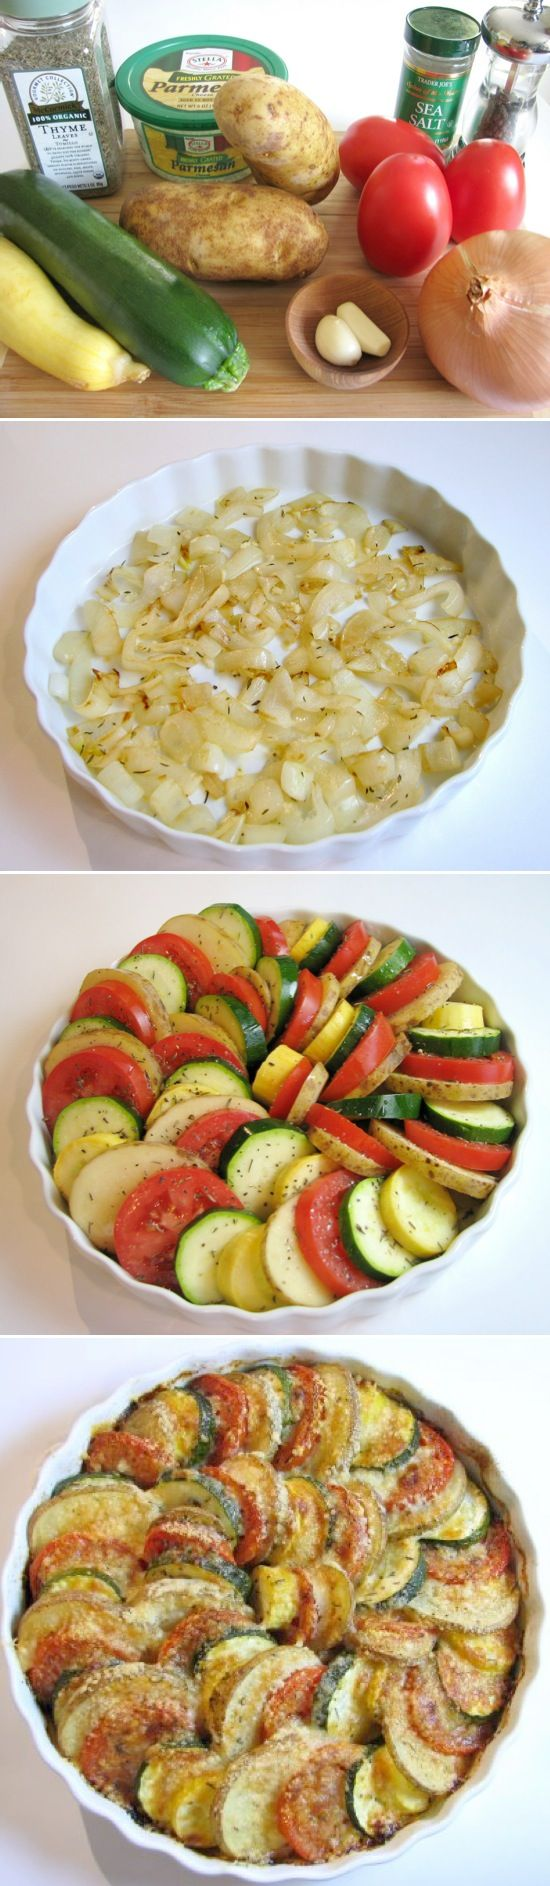 Veggie Spiral - Parmesan Vegetable Spiral: a bed of onions is topped